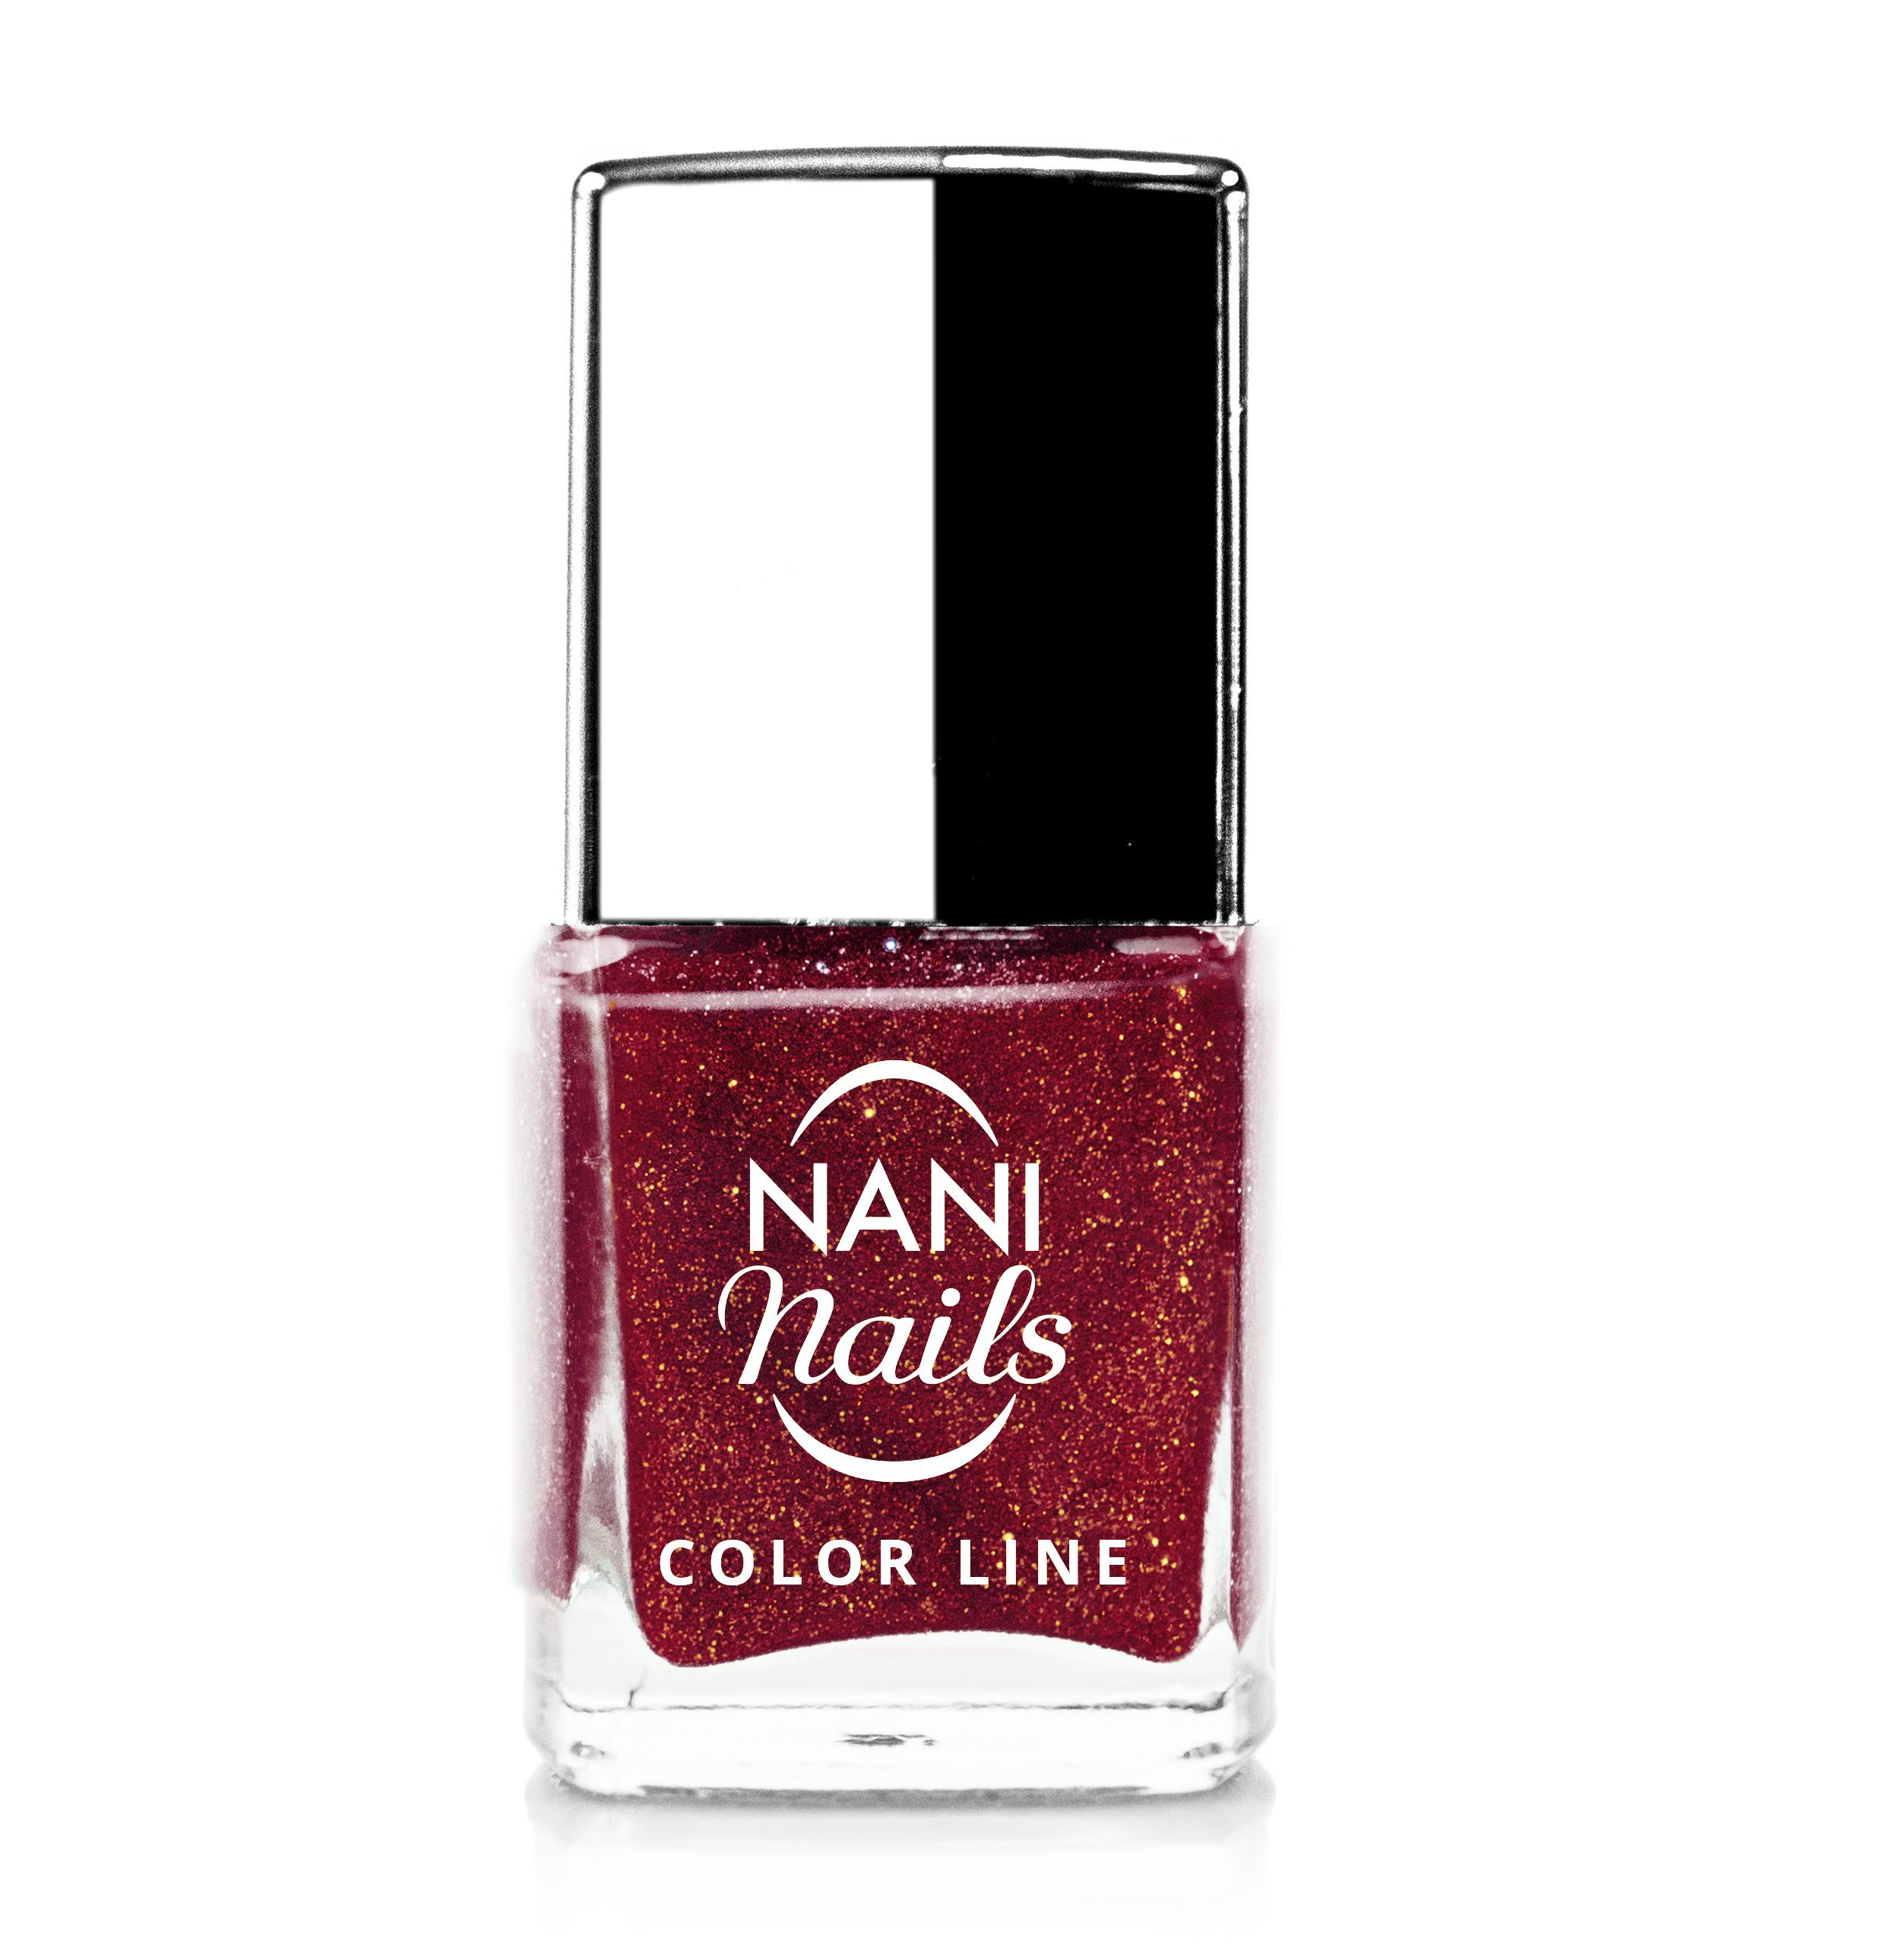 NANI lak Color Line 9 ml - 127